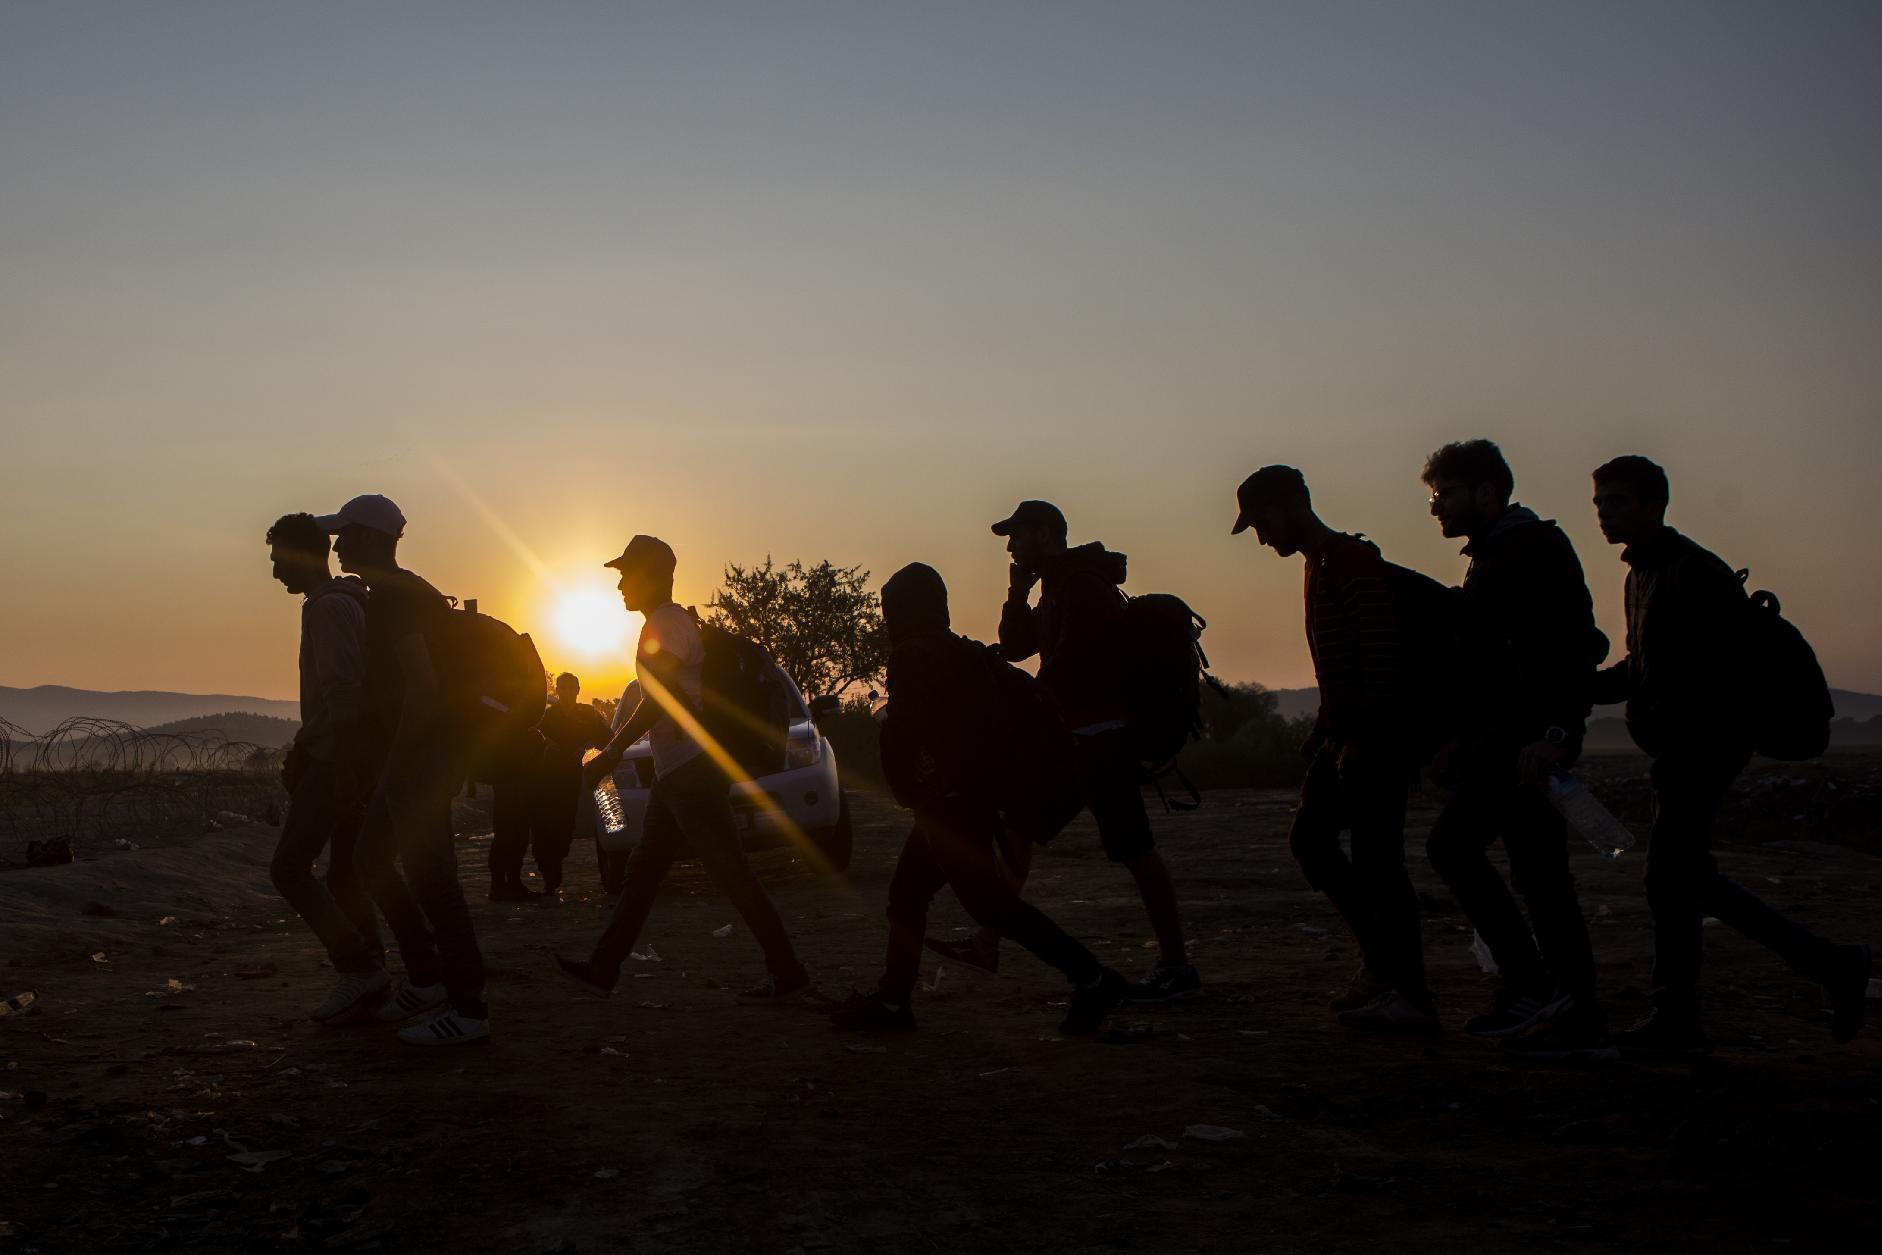 Refugees or migrants? Debate over words to describe crisis